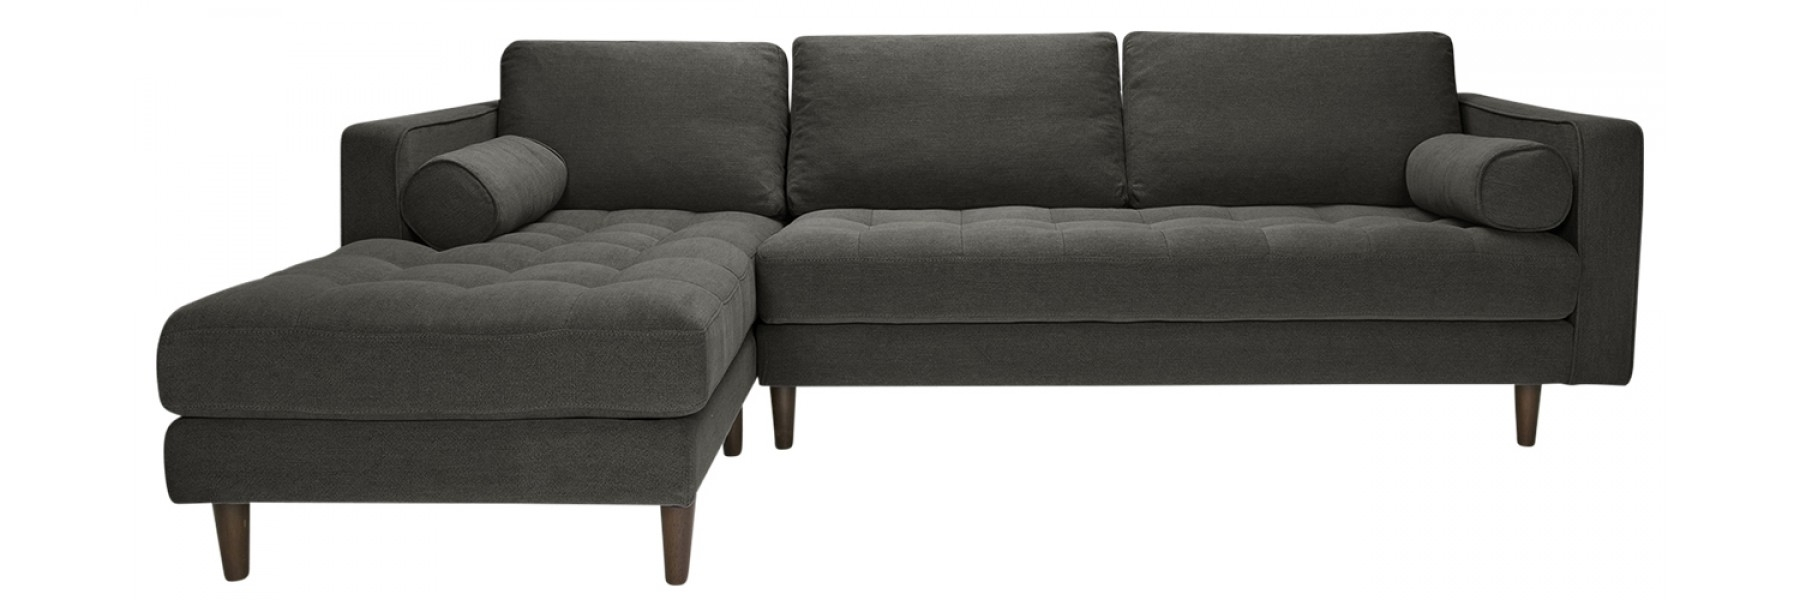 Sawyer Laf Sectional Stoned Slate Regarding Harper Foam 3 Piece Sectionals With Raf Chaise (View 22 of 25)